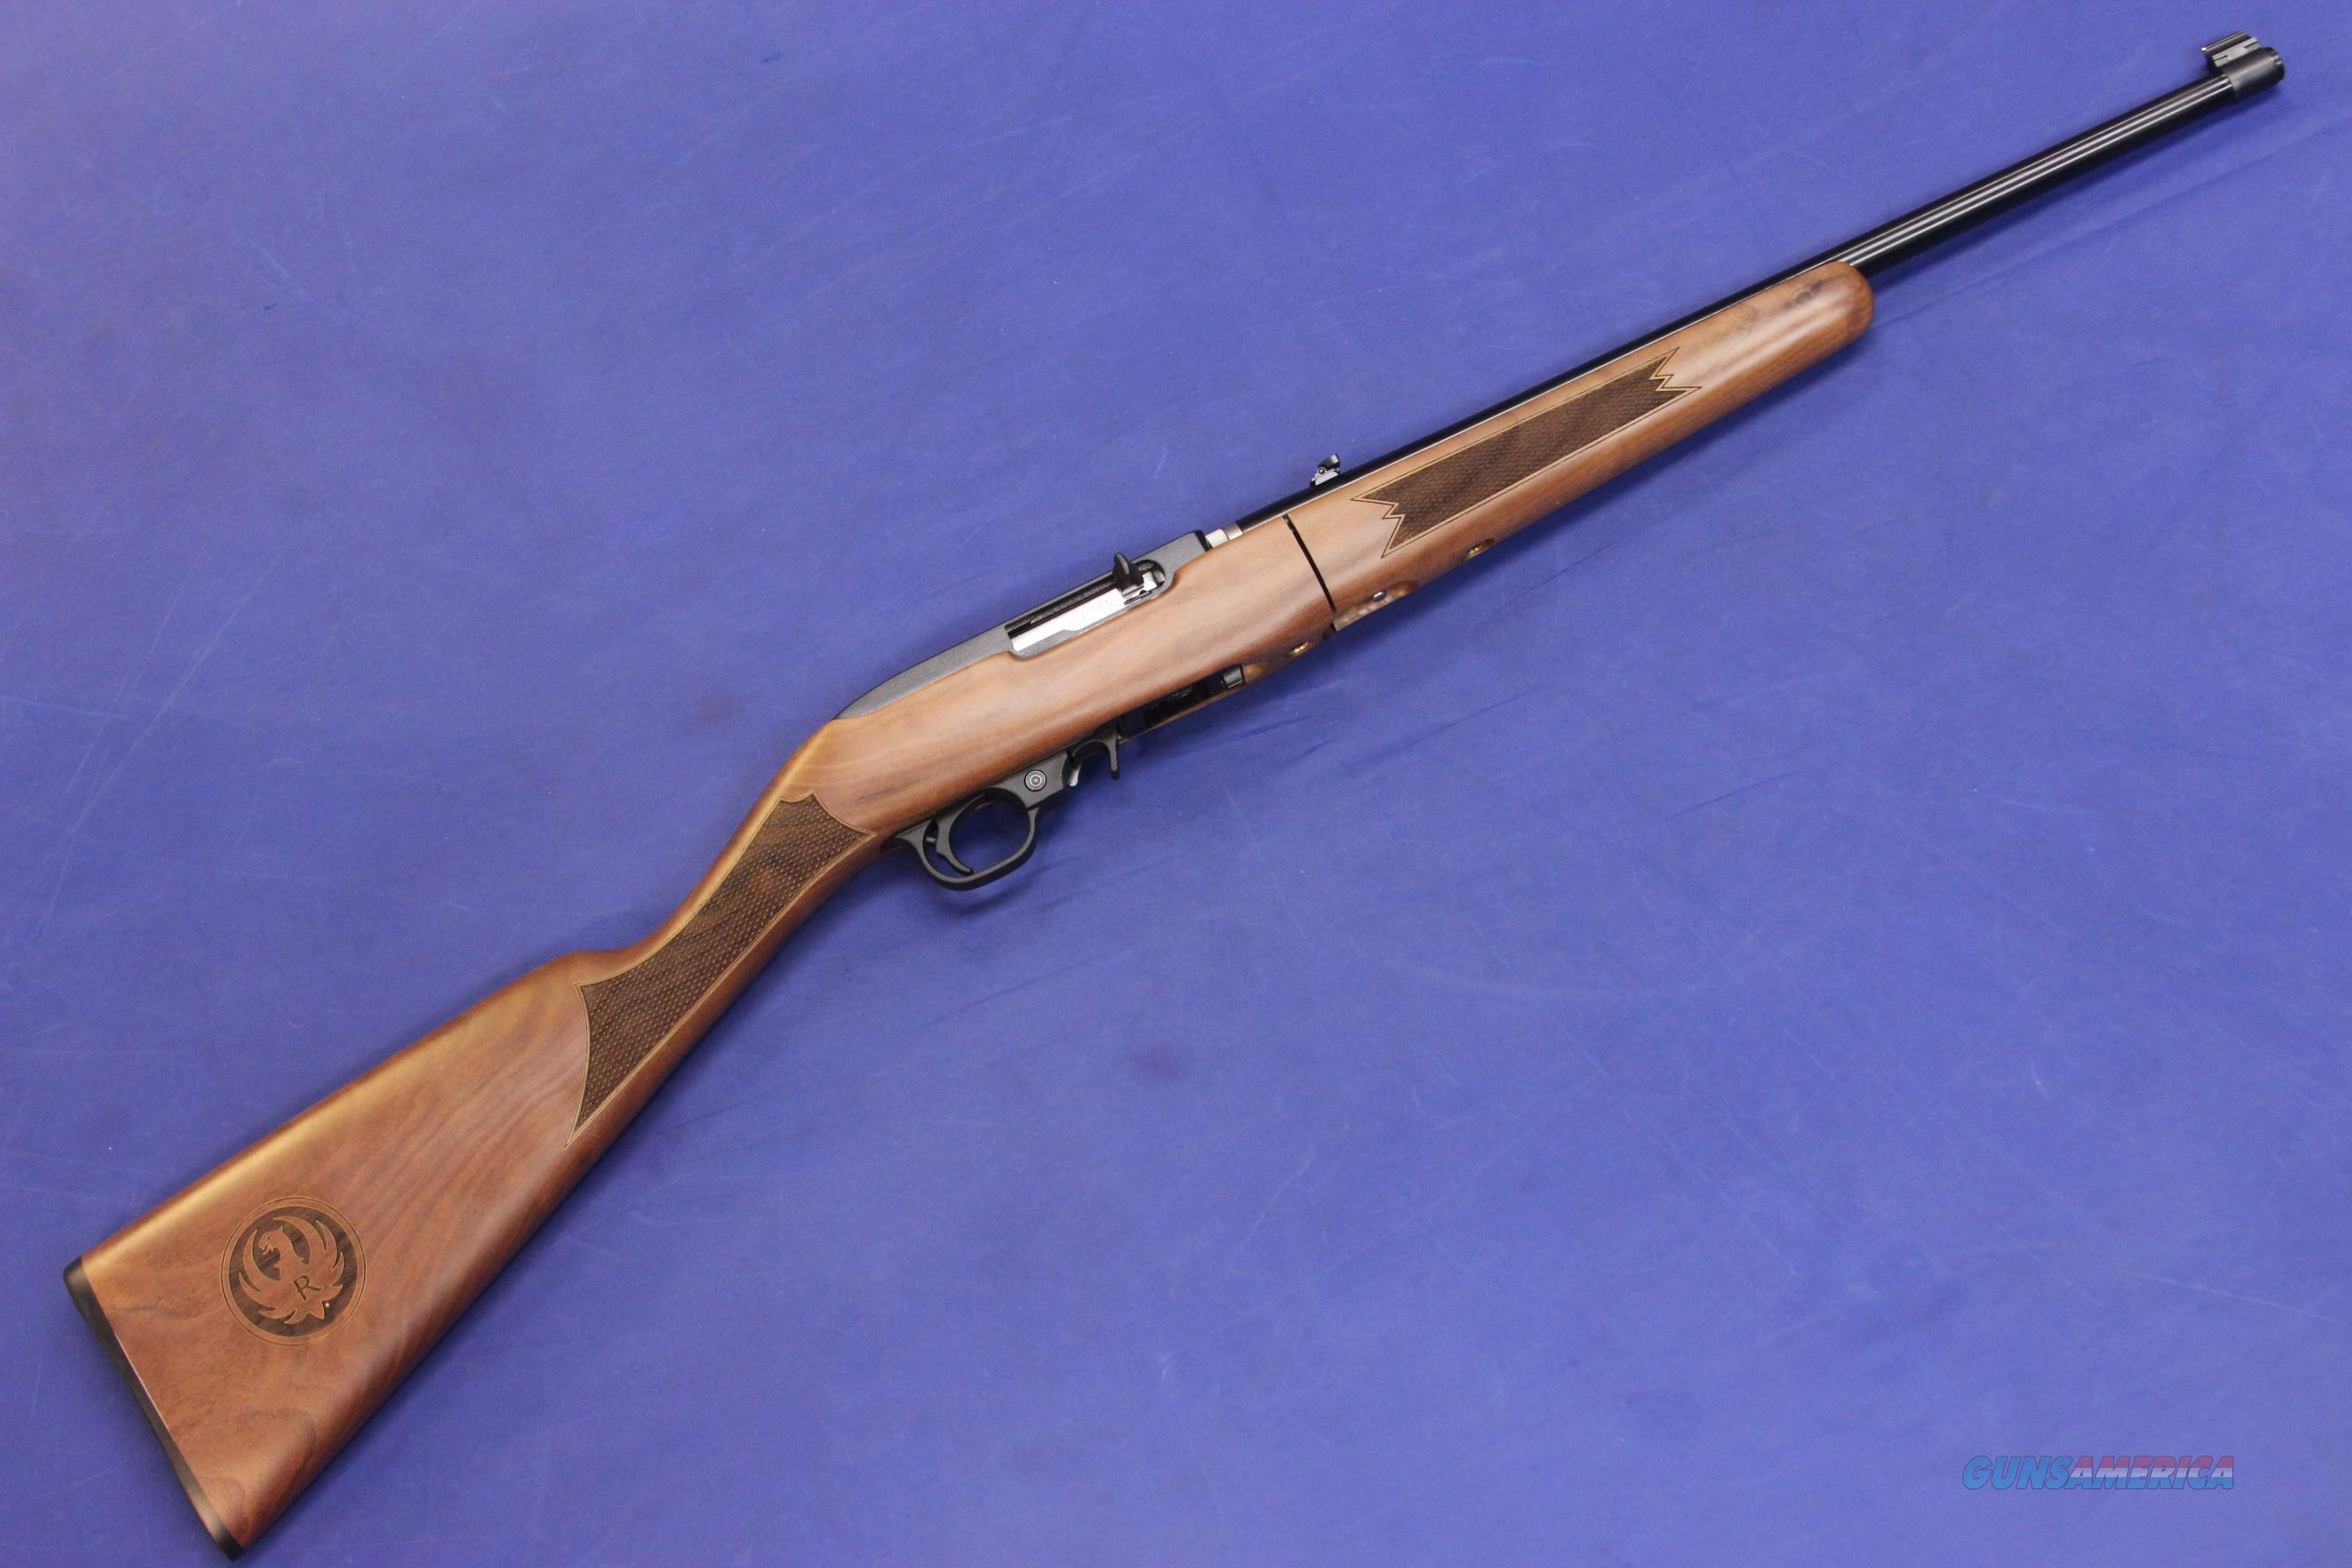 RUGER 10/22 CLASSIC VI TAKEDOWN TALO .22 LR - NEW!   Guns > Rifles > Ruger Rifles > 10-22